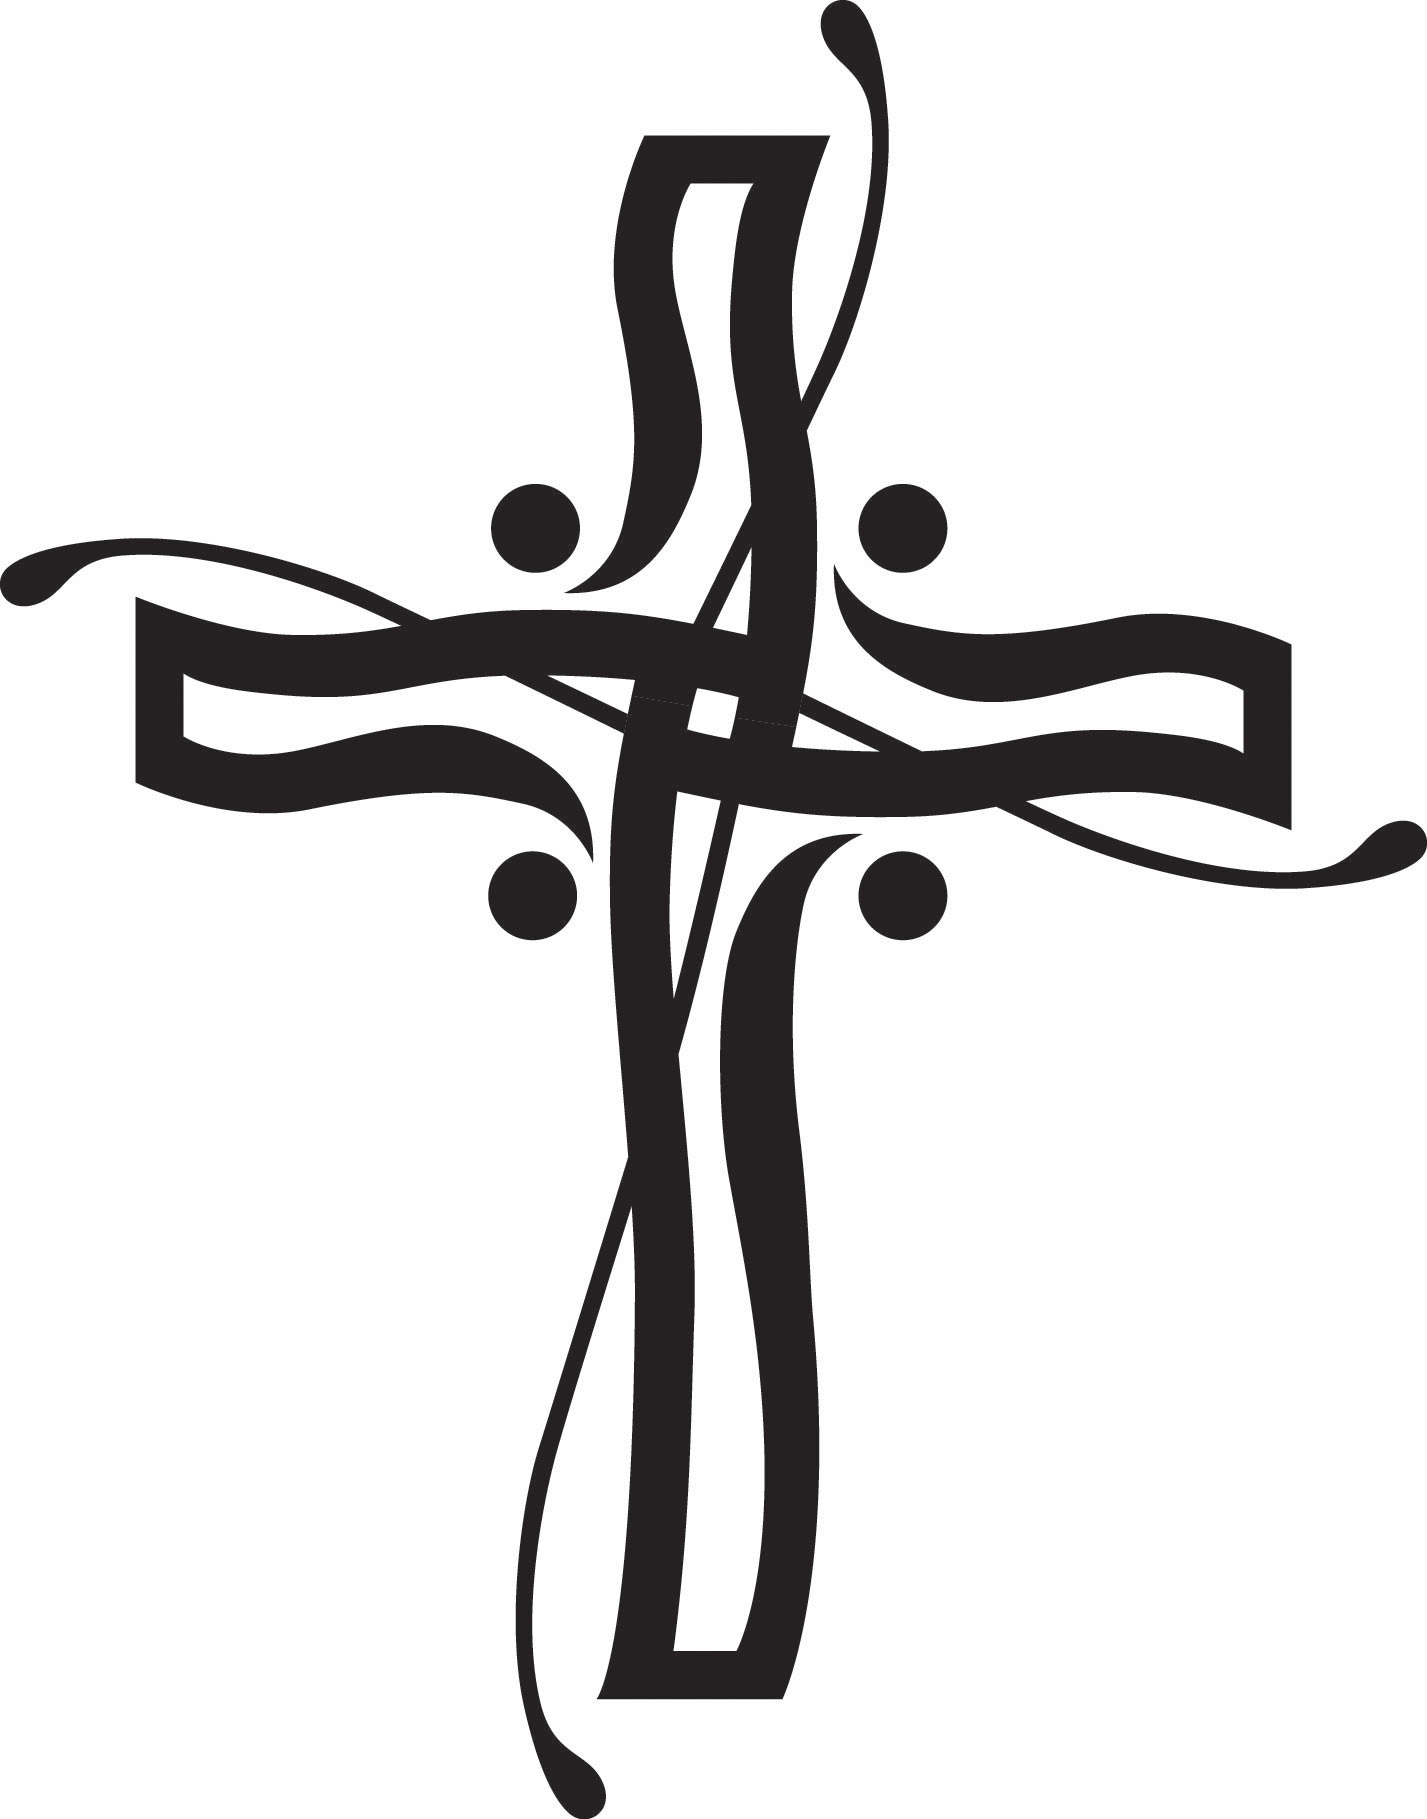 1427x1819 Lily Clipart Funeral Cross